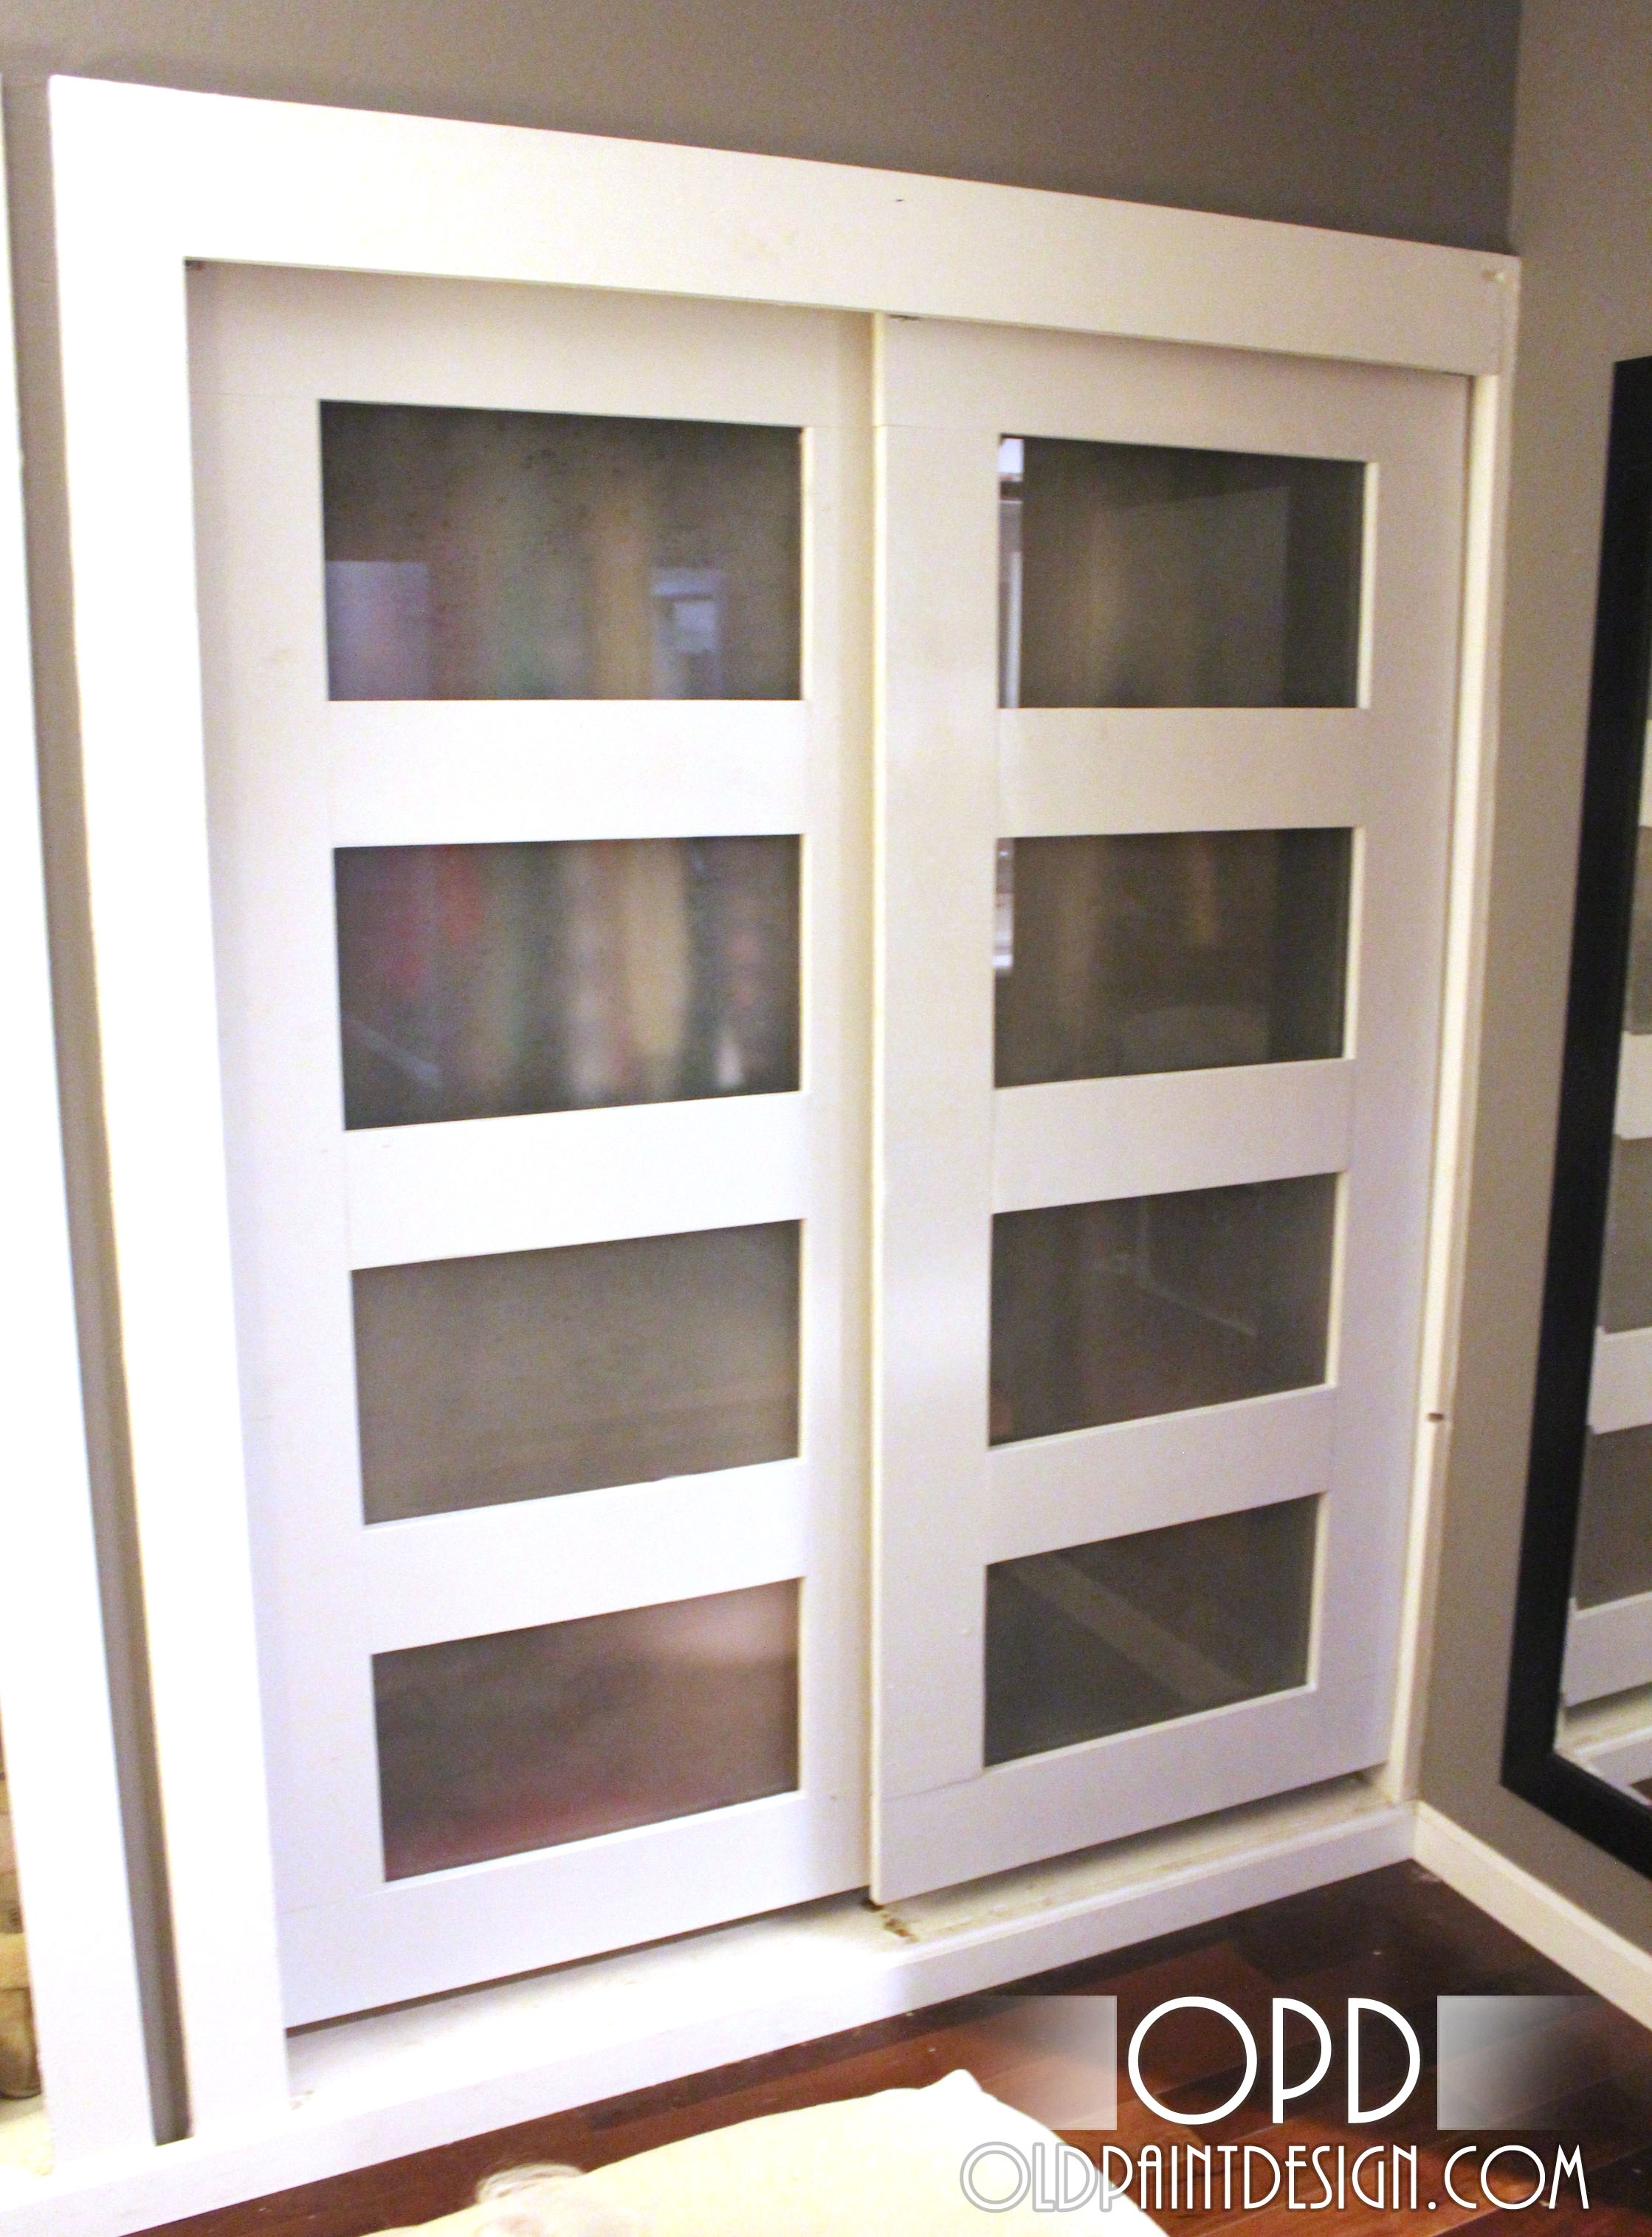 Make Sliding Doors For Closetana white pass closet doors diy projects